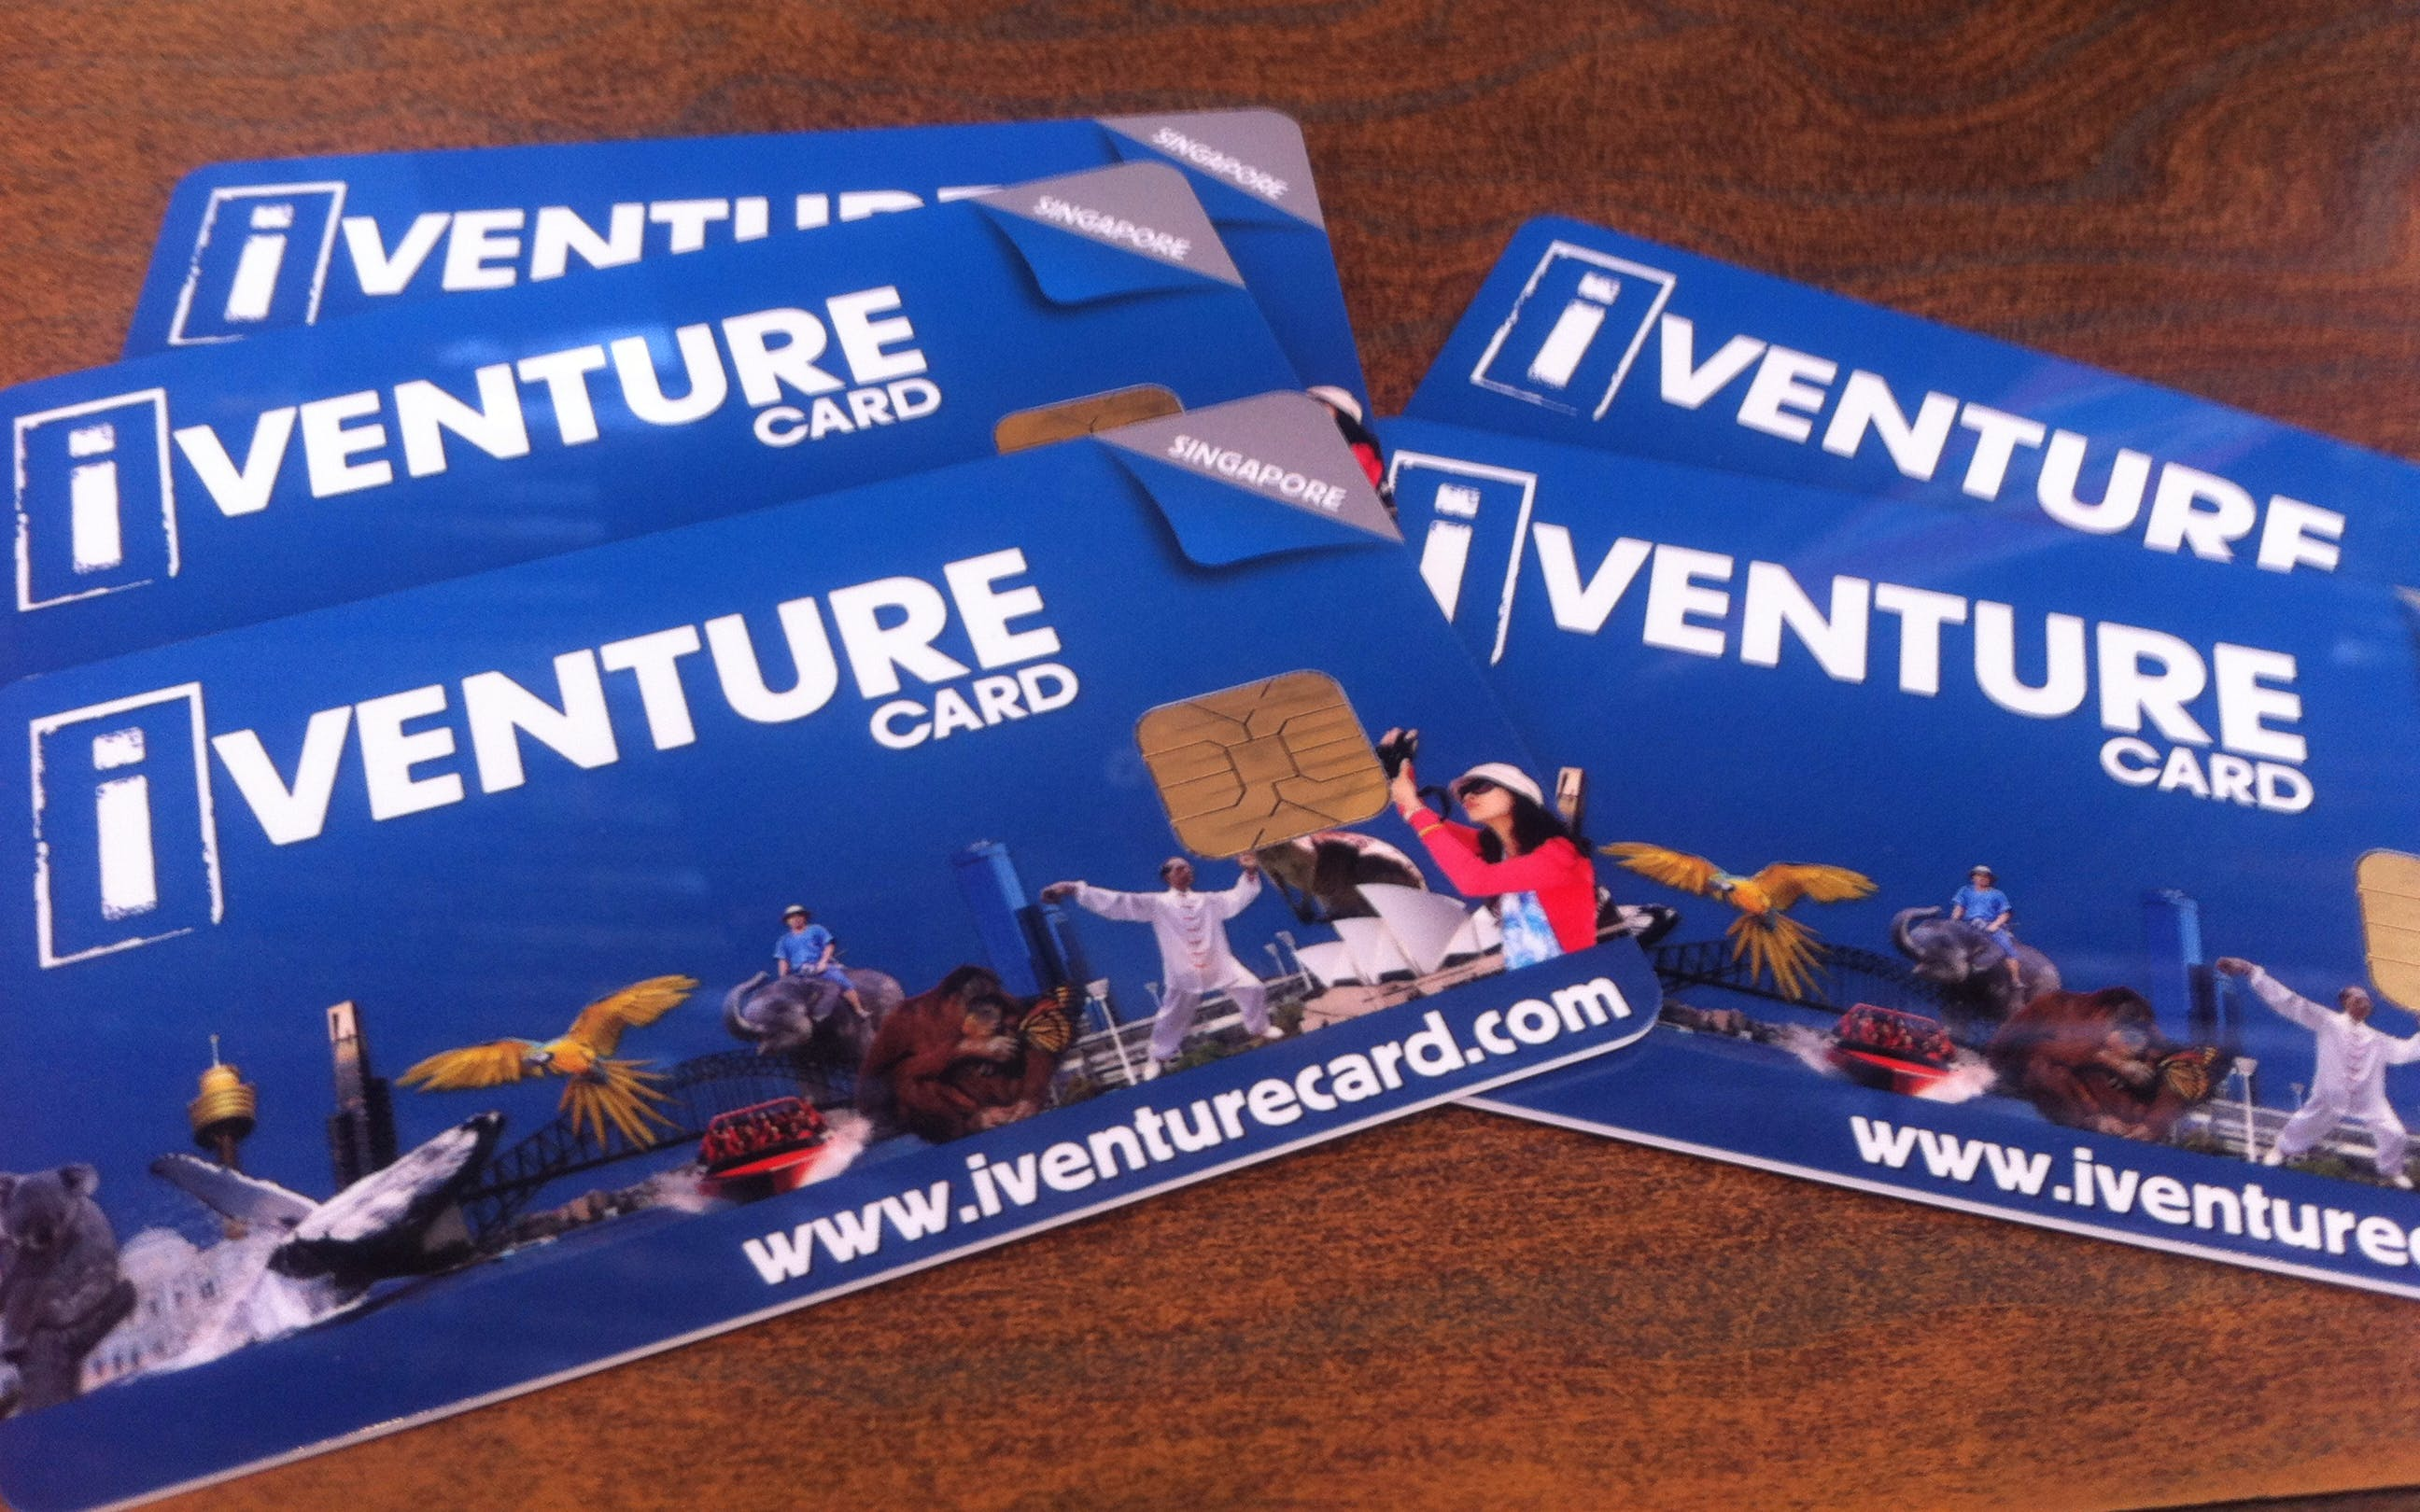 iventure card san francisco-1